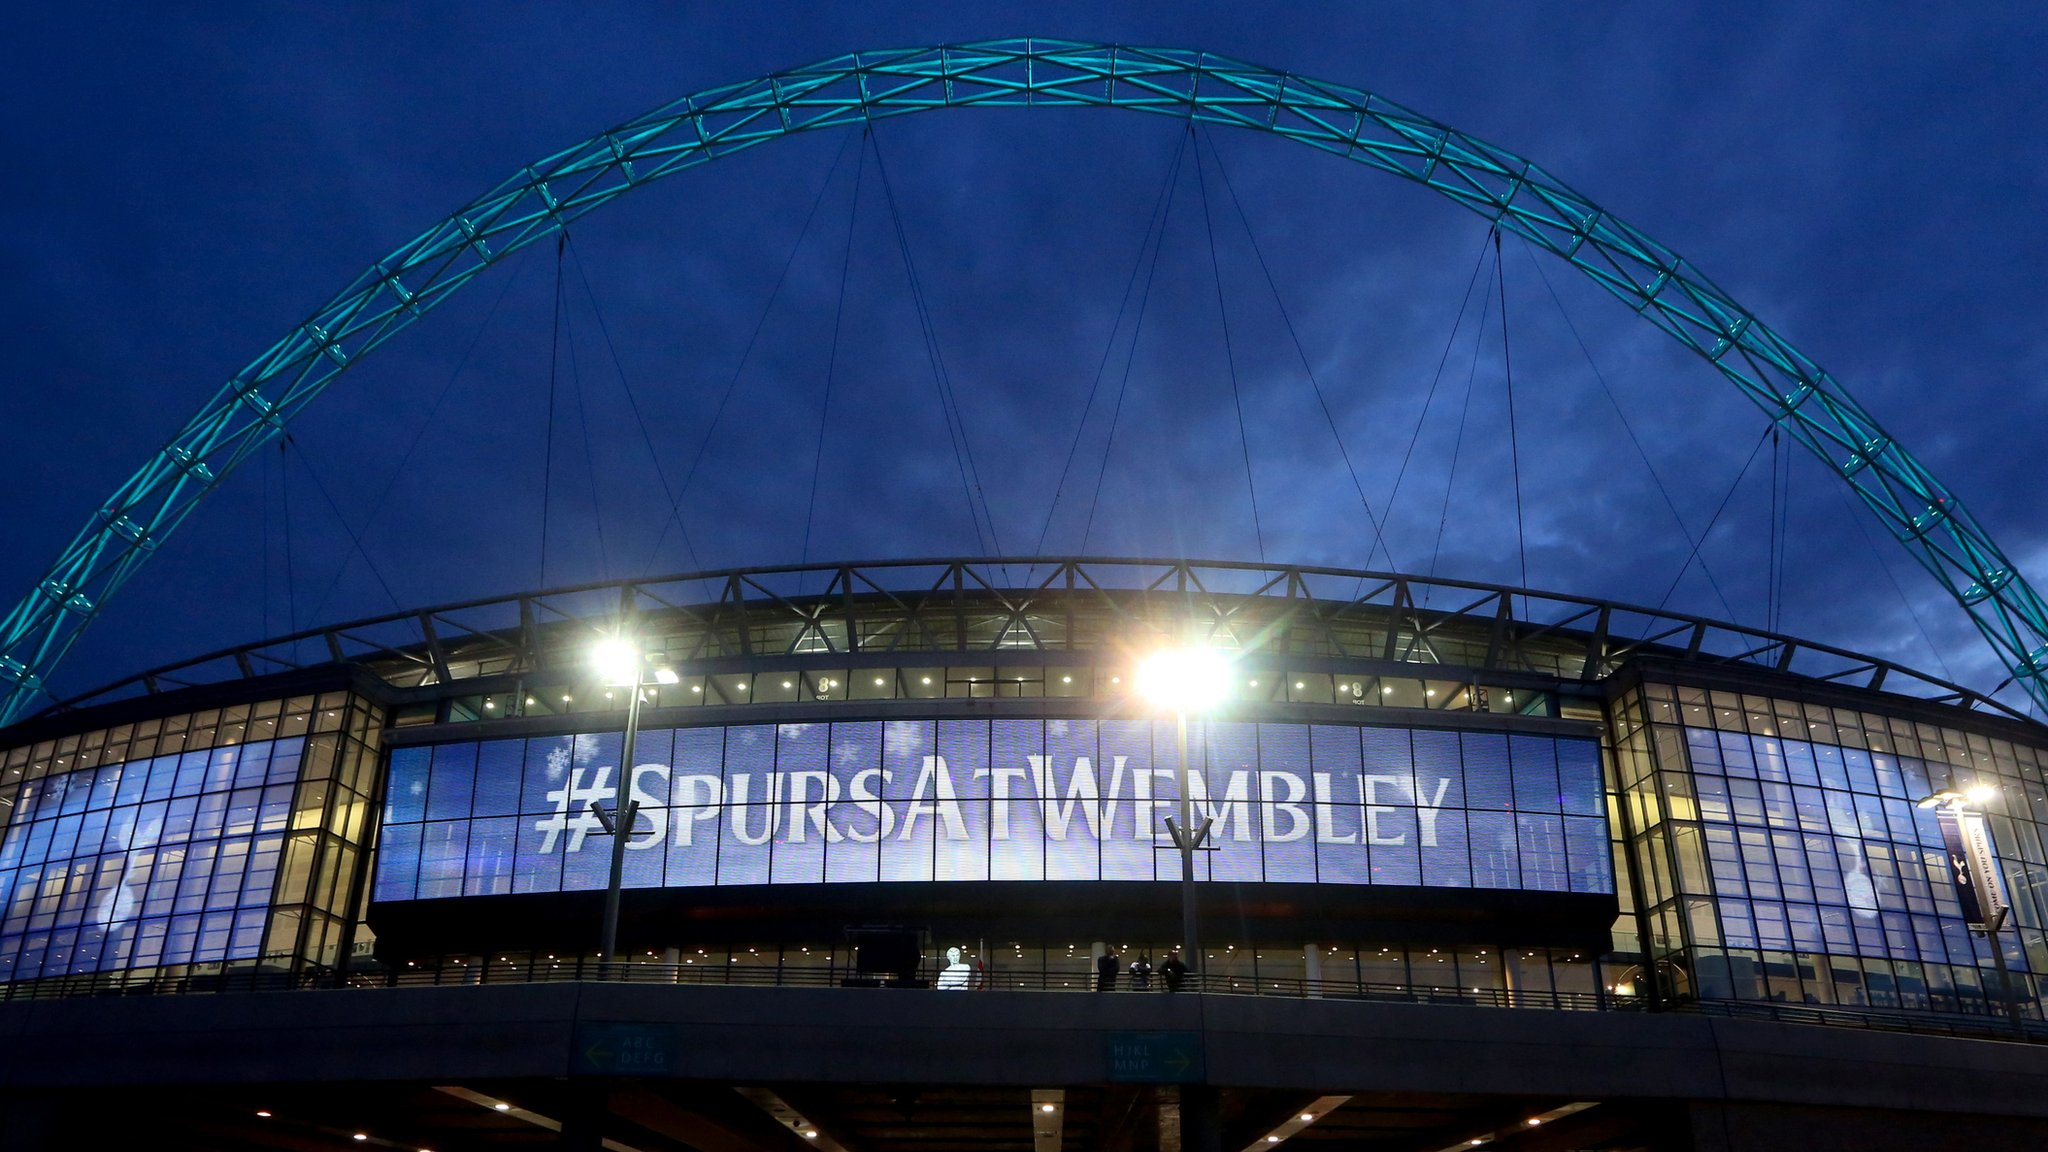 Tottenham stadium: Club will play home games at Wembley in 2017-18